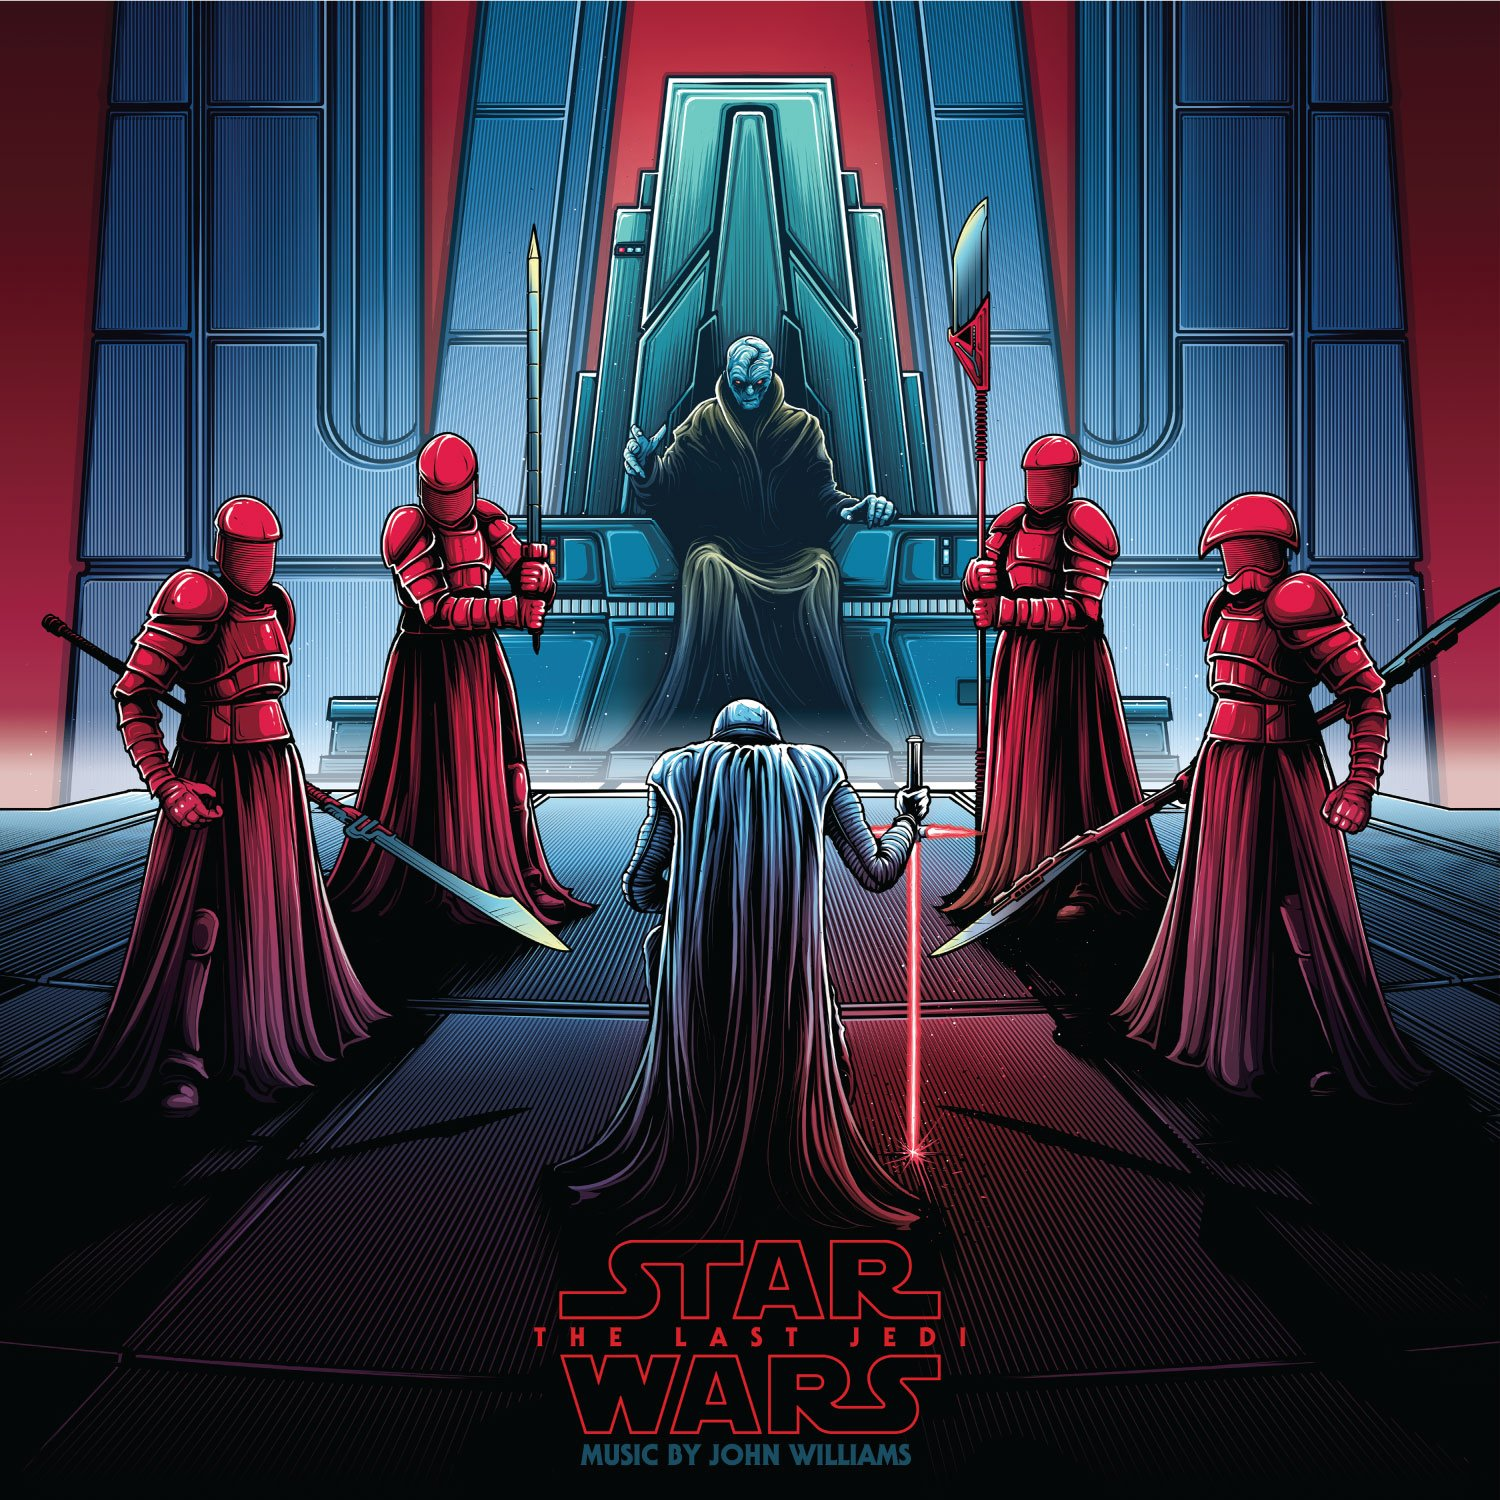 Star Wars: The Last Jedi - Original Motion Picture Soundtrack (Collector's Edition) Snoke & Kylo 2xLP